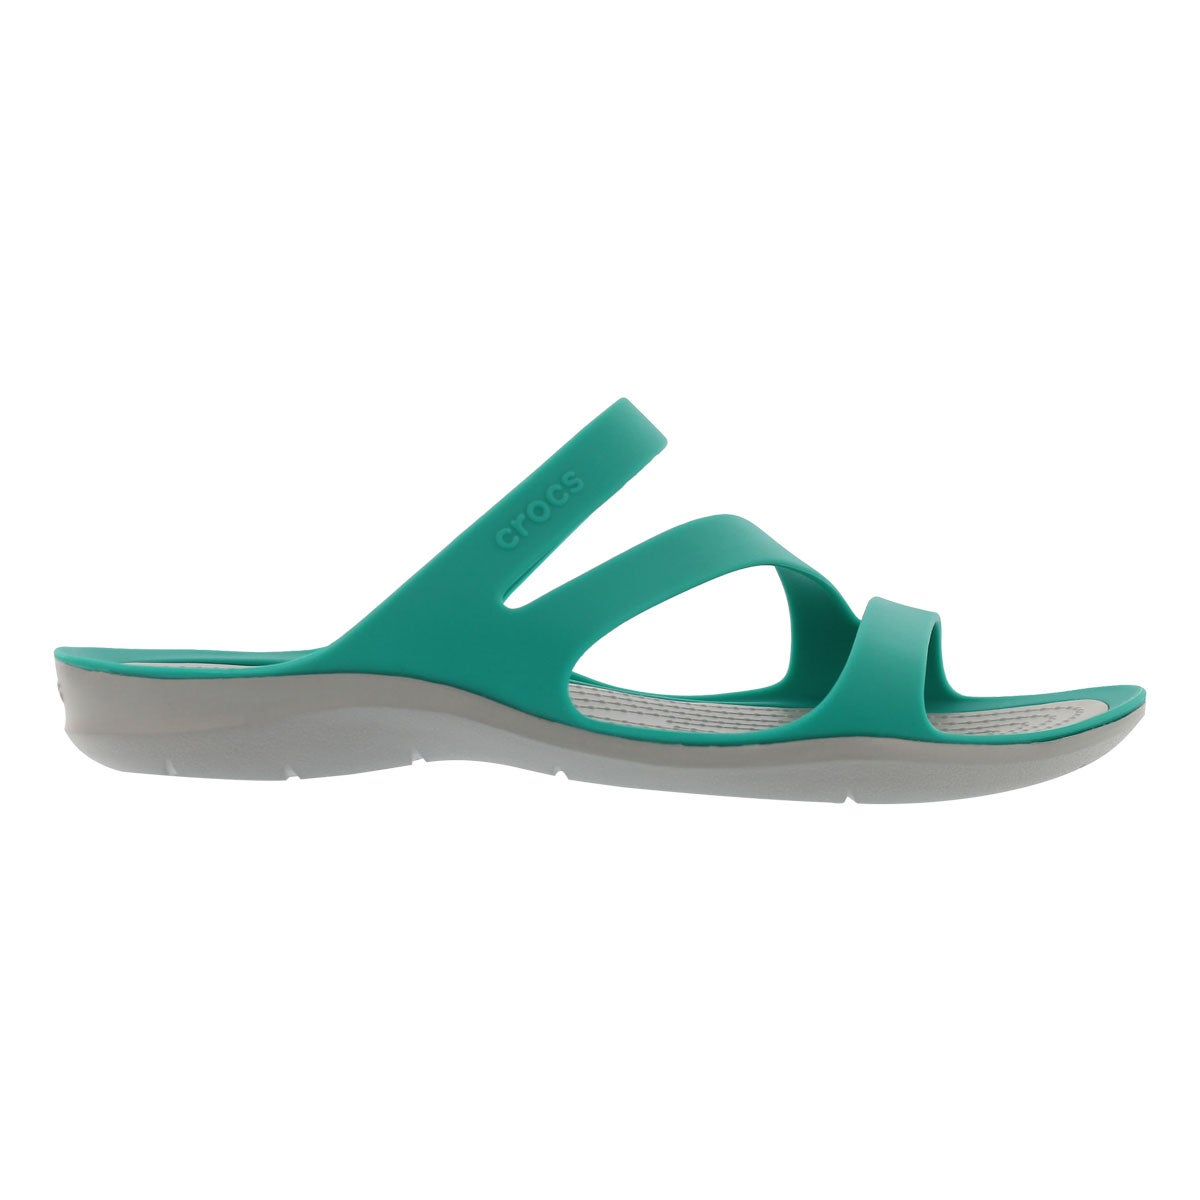 Lds Swiftwater trop teal/gry slide sndl